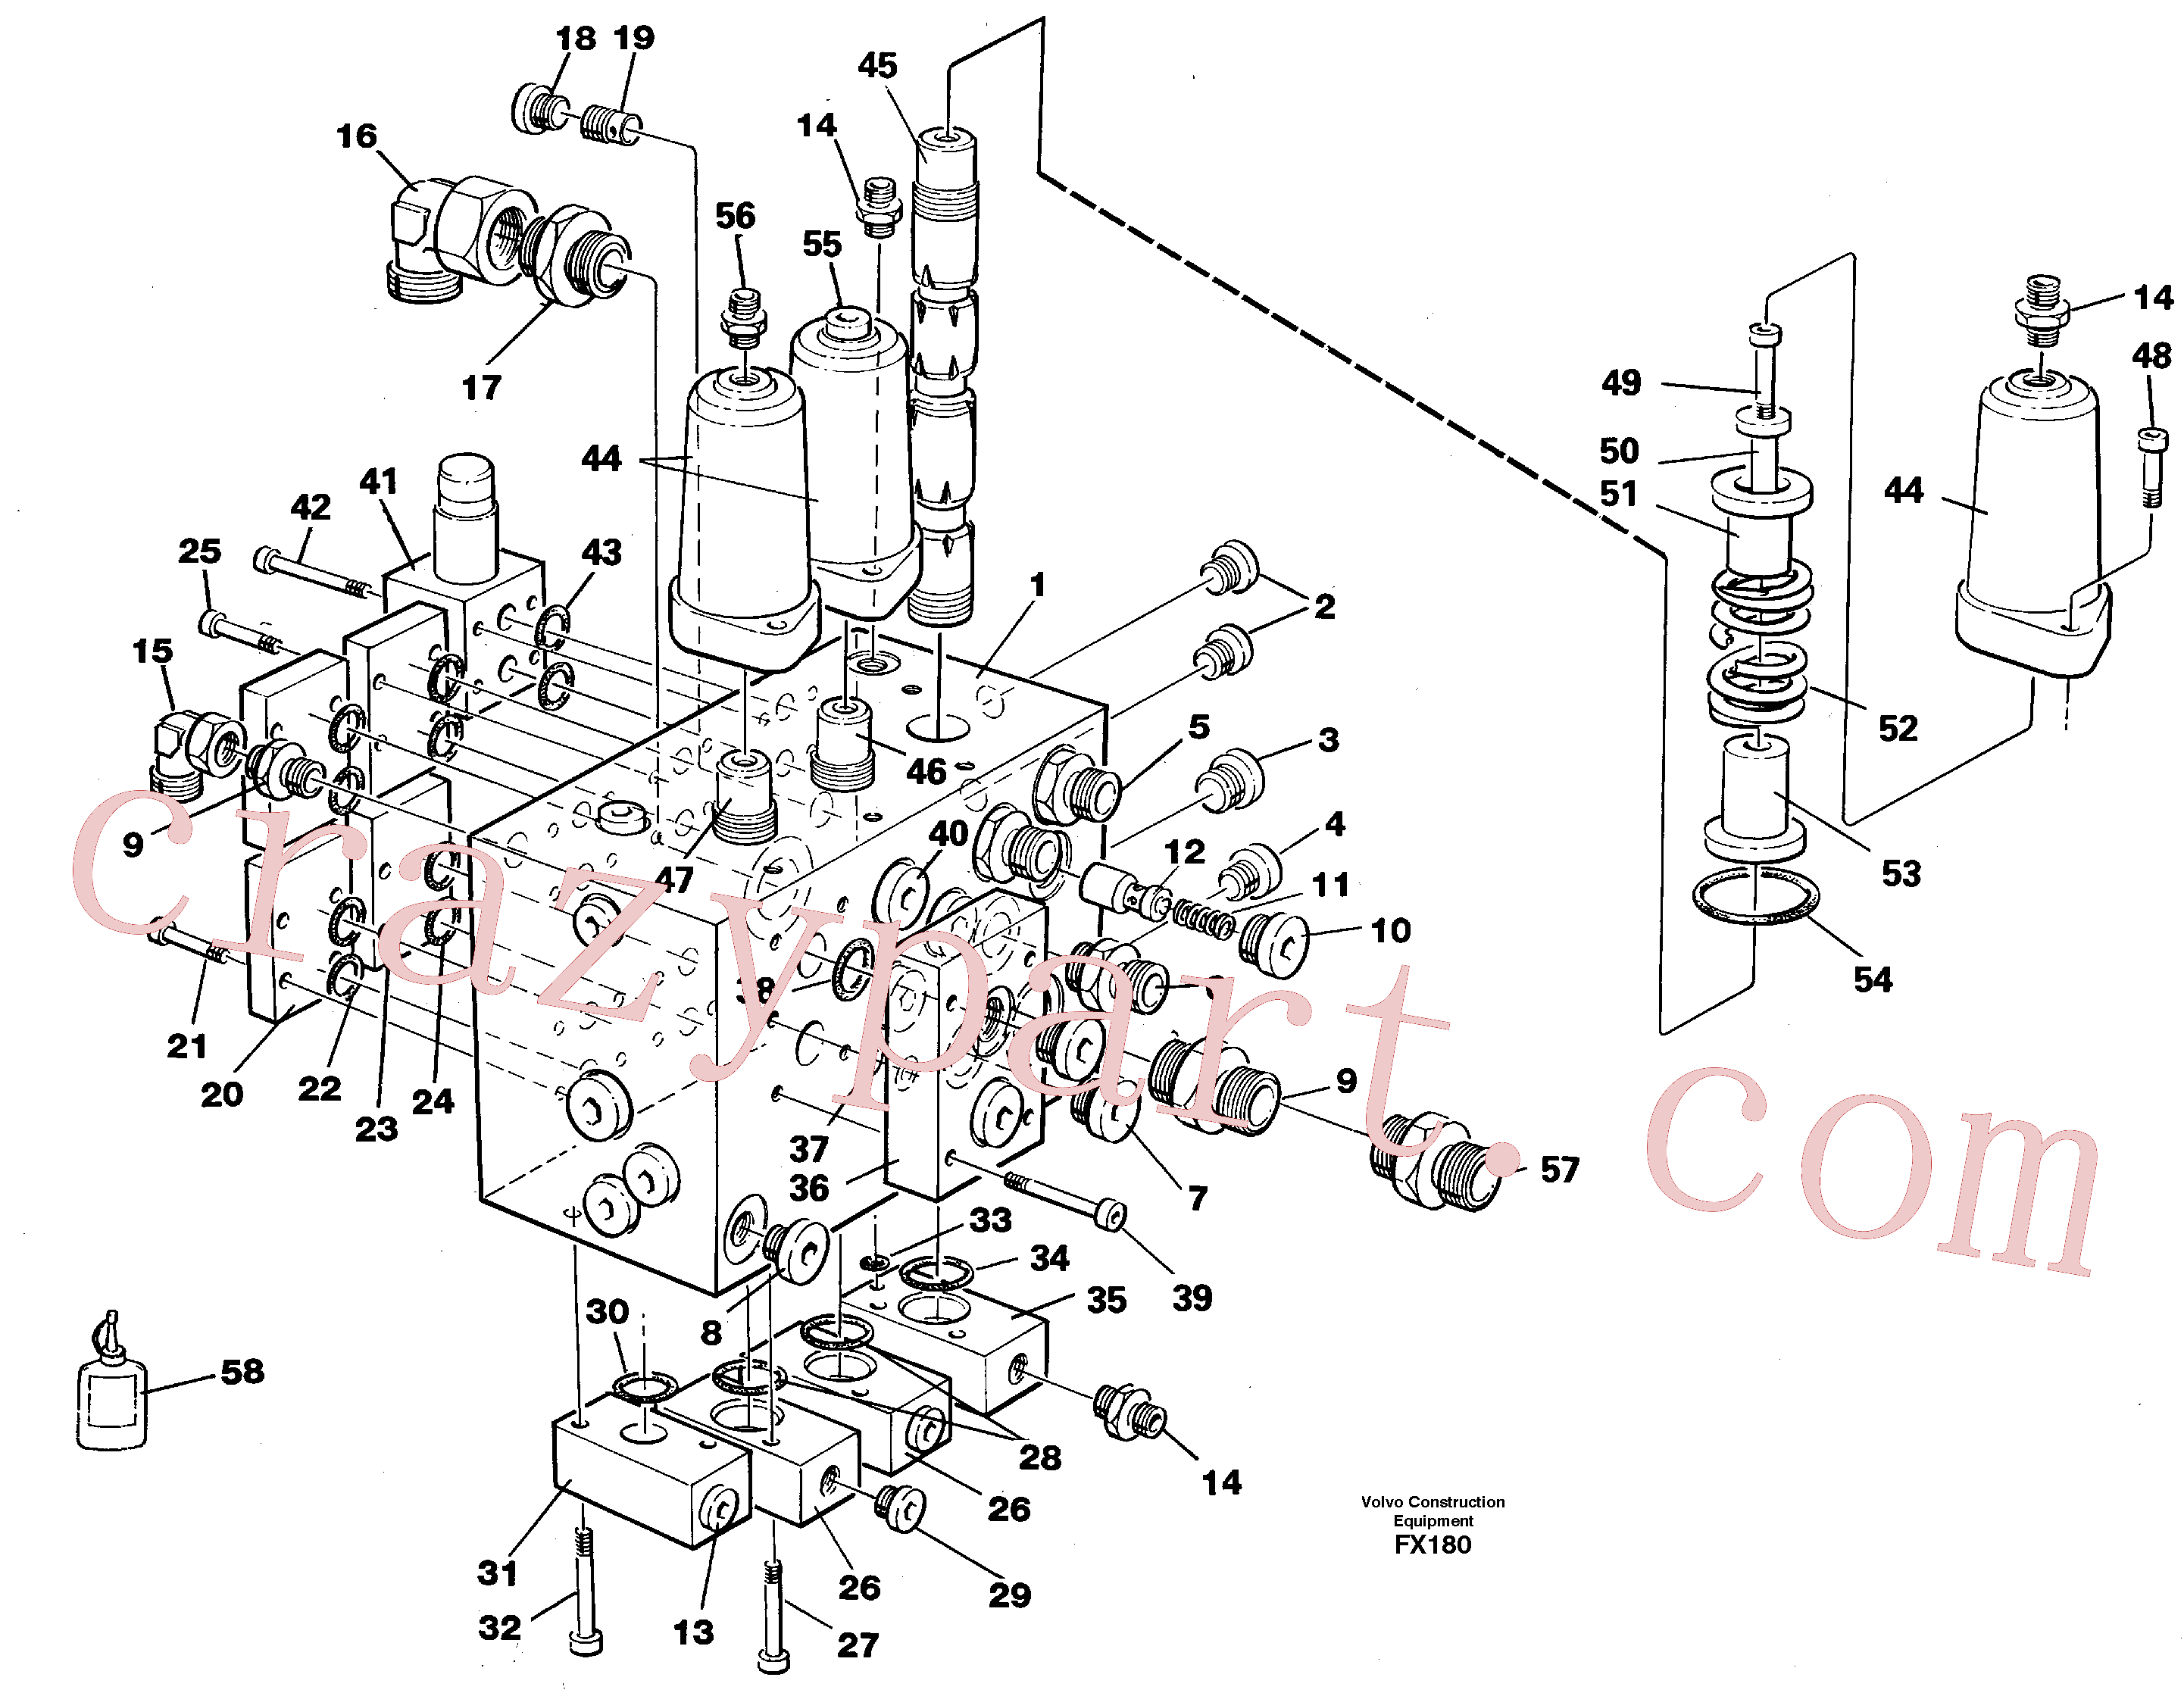 VOE14213280 for Volvo Slew valve assembly(FX180 assembly)